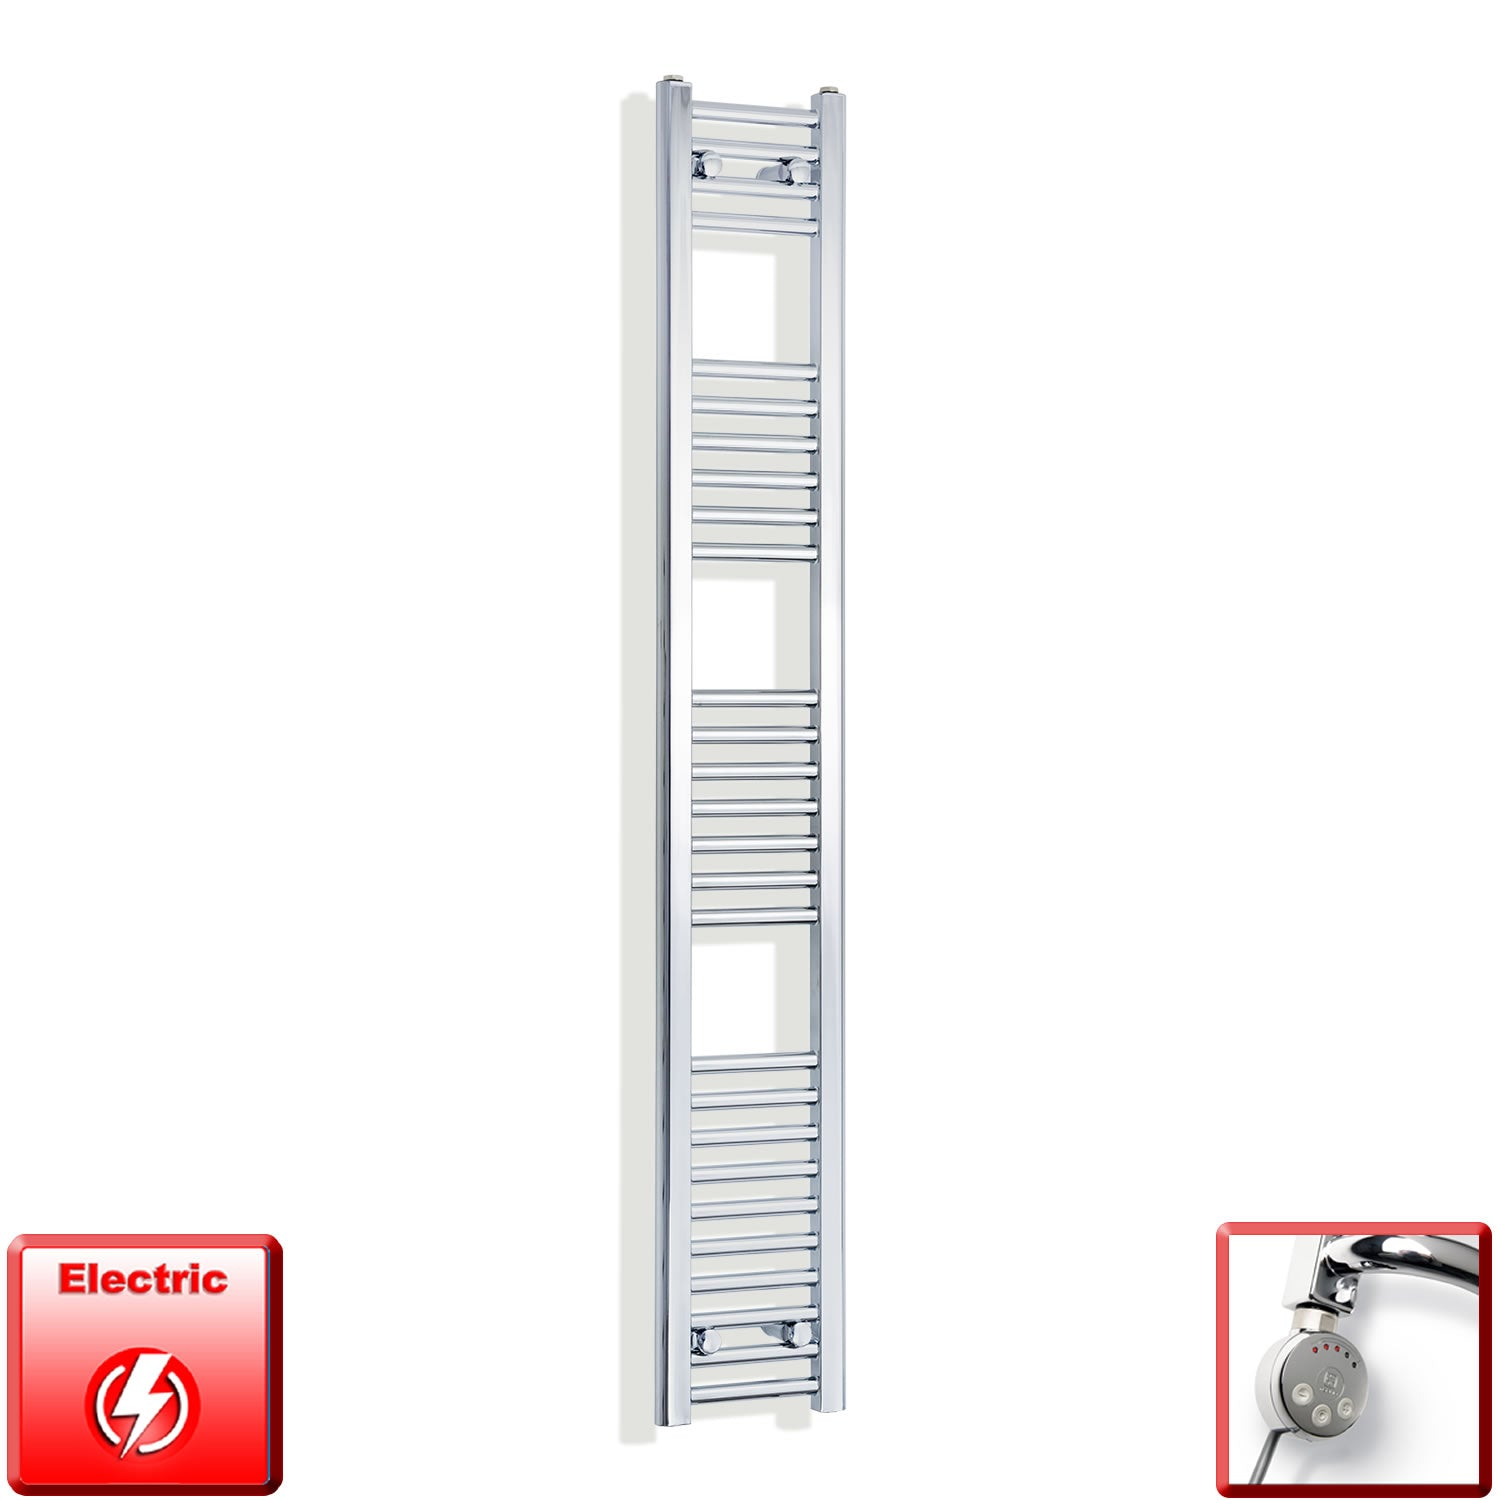 200mm Wide 1600mm High Pre-Filled Chrome Electric Towel Rail Radiator With Thermostatic MEG Element